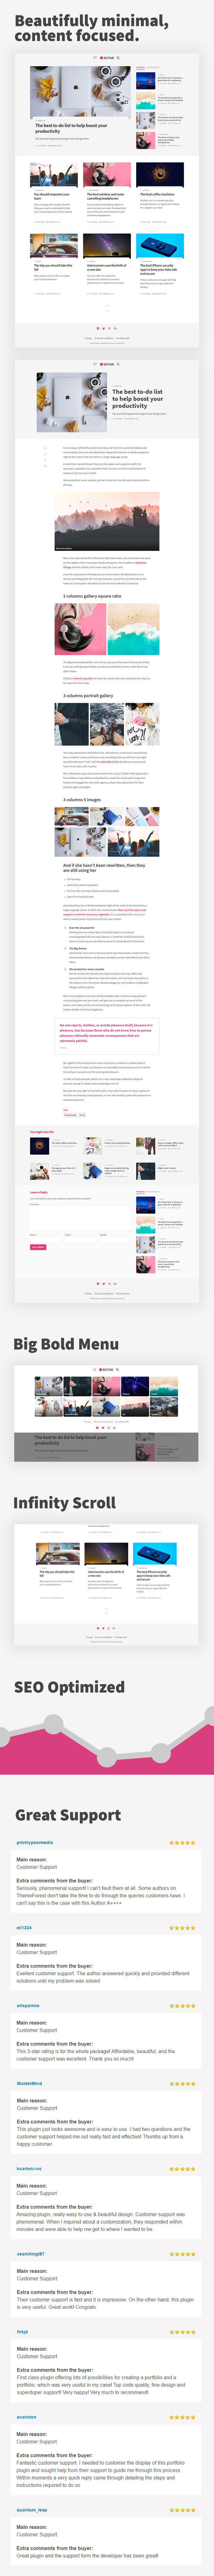 Kutak – Creative Personal Blog & Minimal Magazine WordPress Theme (Blog / Magazine)